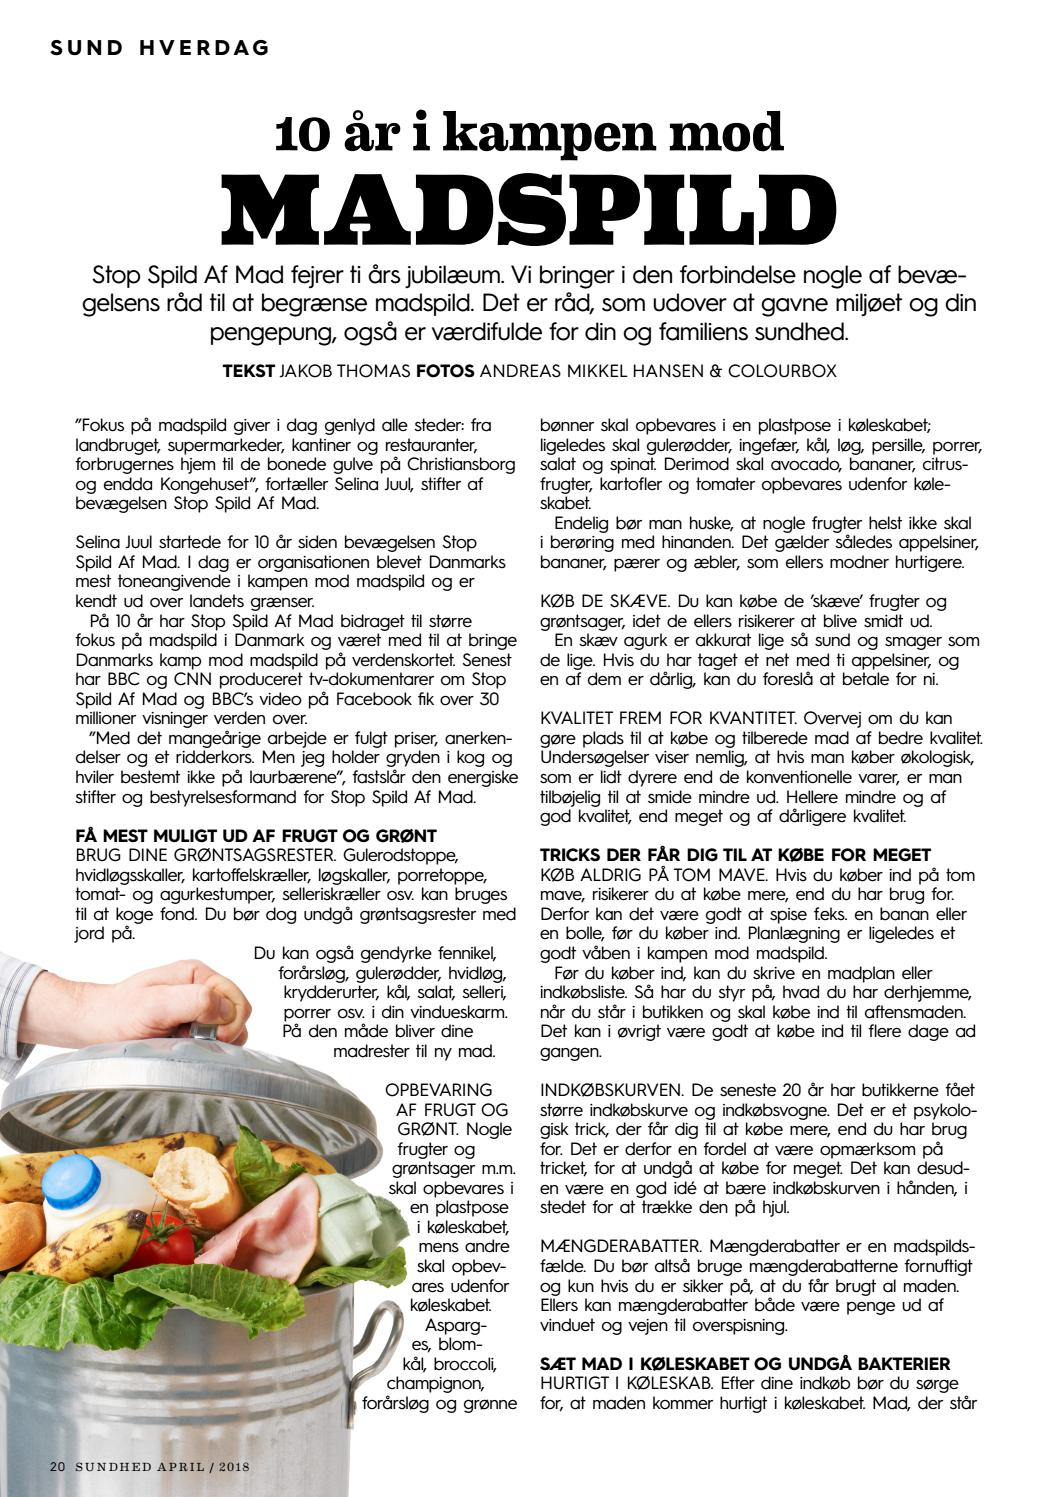 Picture of: Sundhed April 2018 By Magasinet Sundhed Issuu